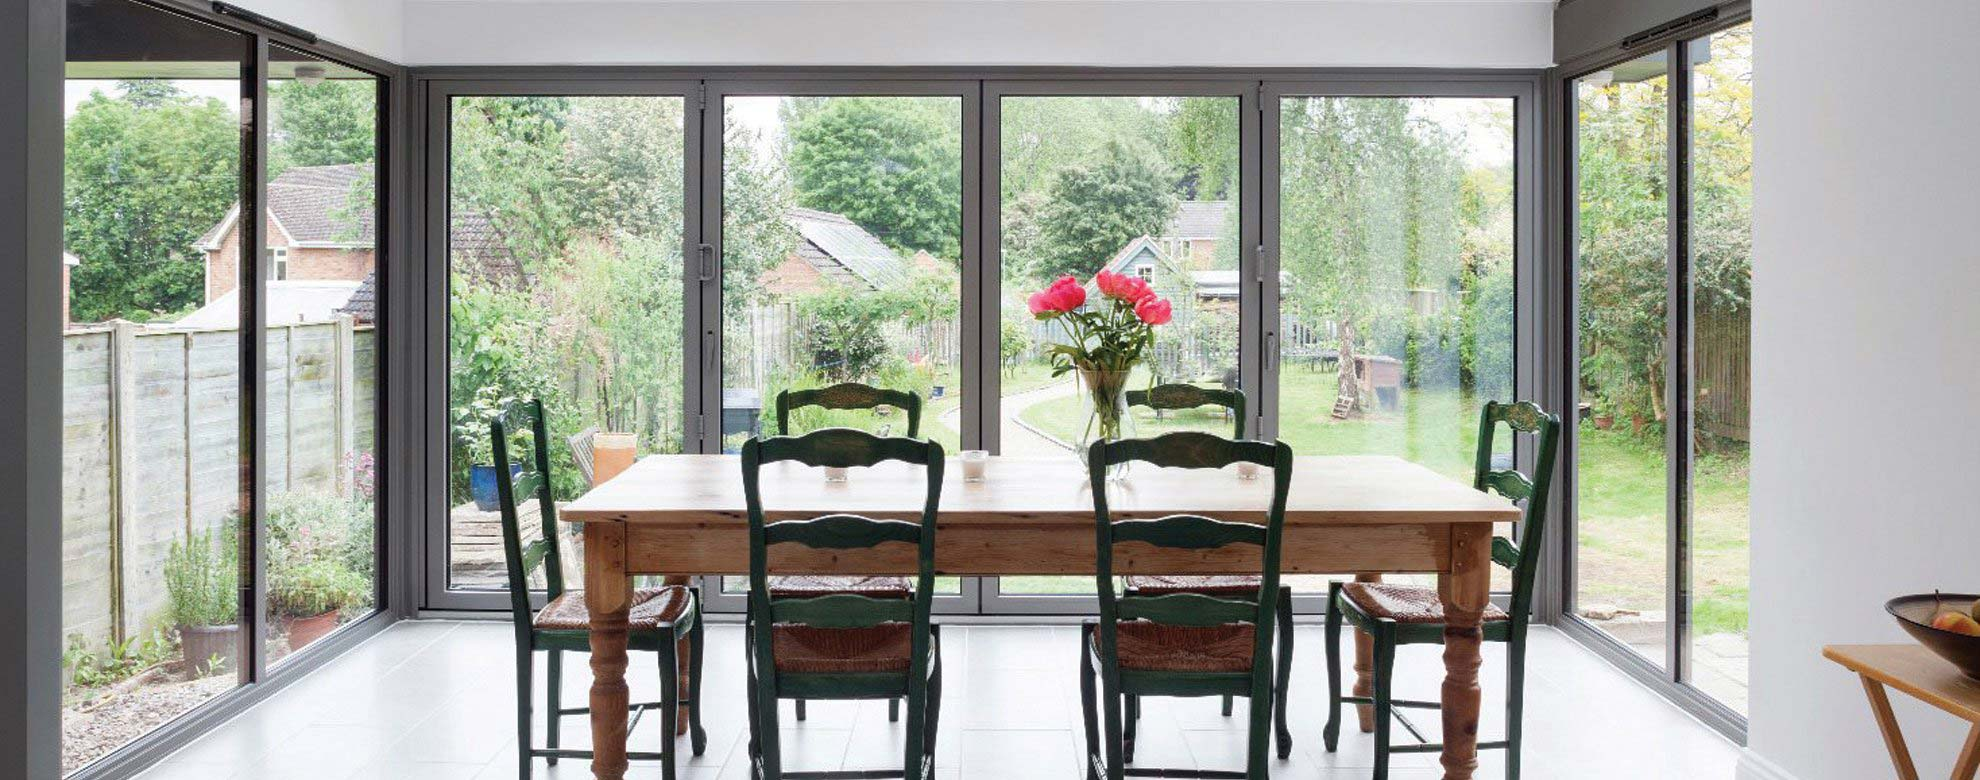 sussex aluminium systems leading aluminium doors suppliers